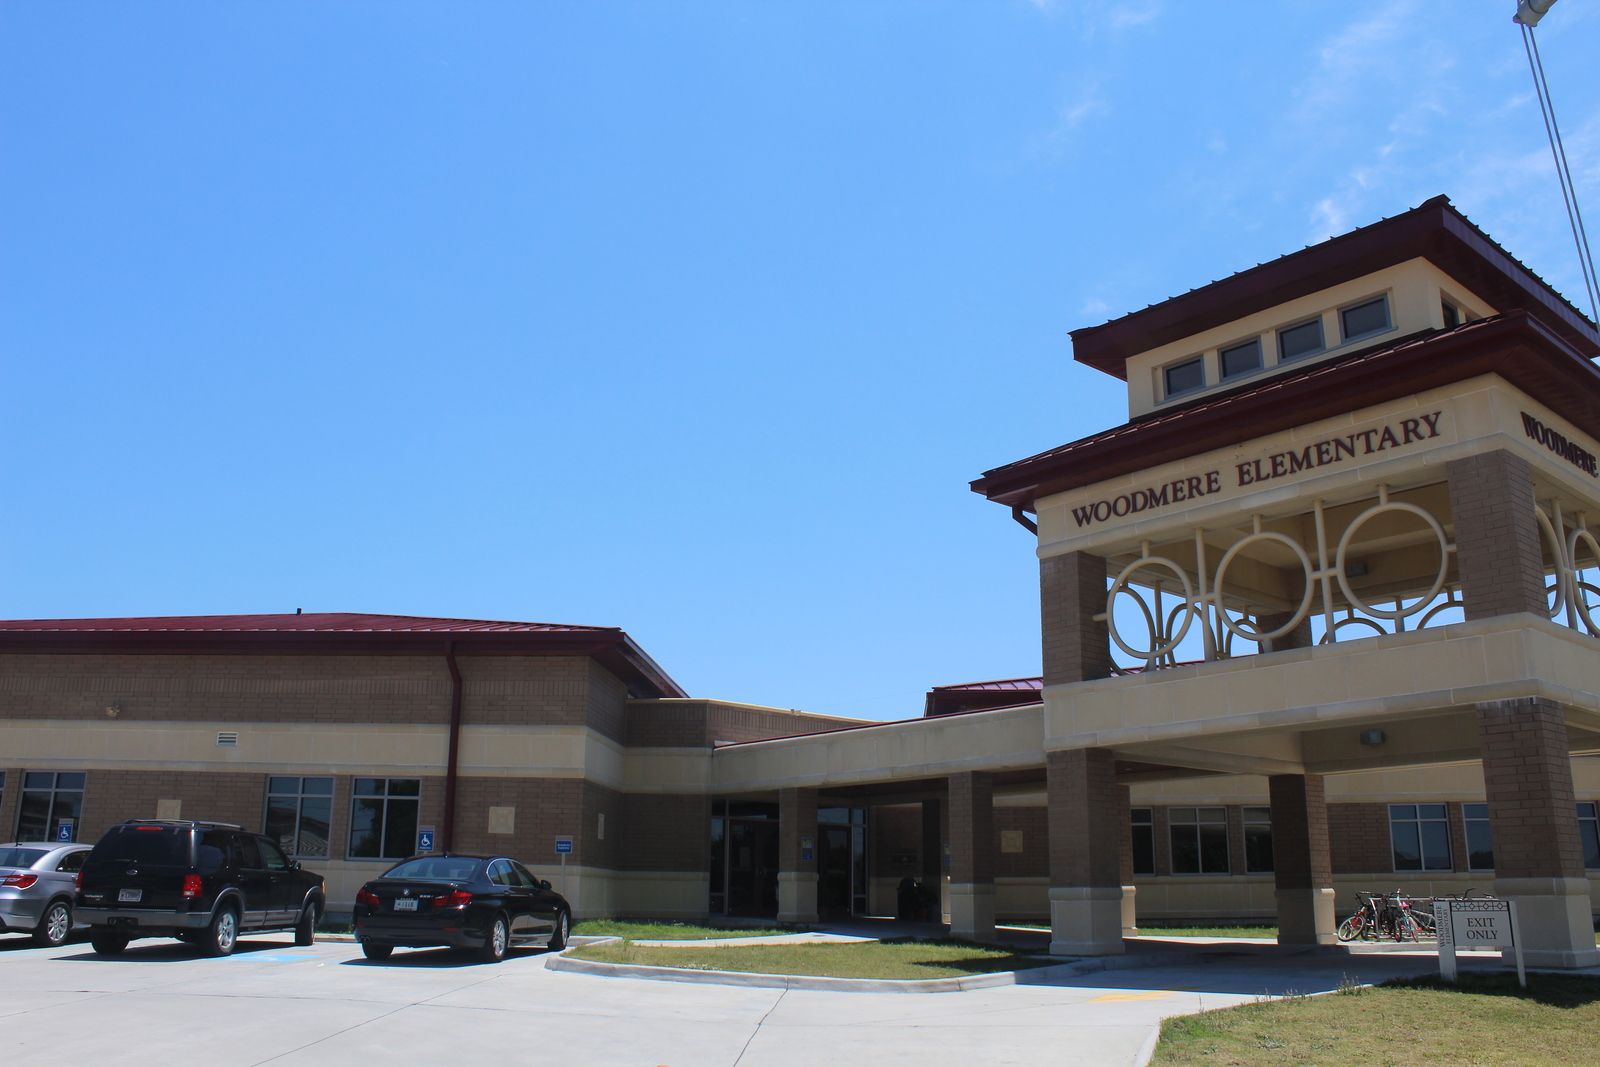 Jefferson Parish, La., May 14, 2013 -- Woodmere Elementary was originally built in 1984 and was severely damaged during Hurricane Katrina. FEMA provided more than $22.4 million in funding to replace the facility. Lillie Long/FEMA